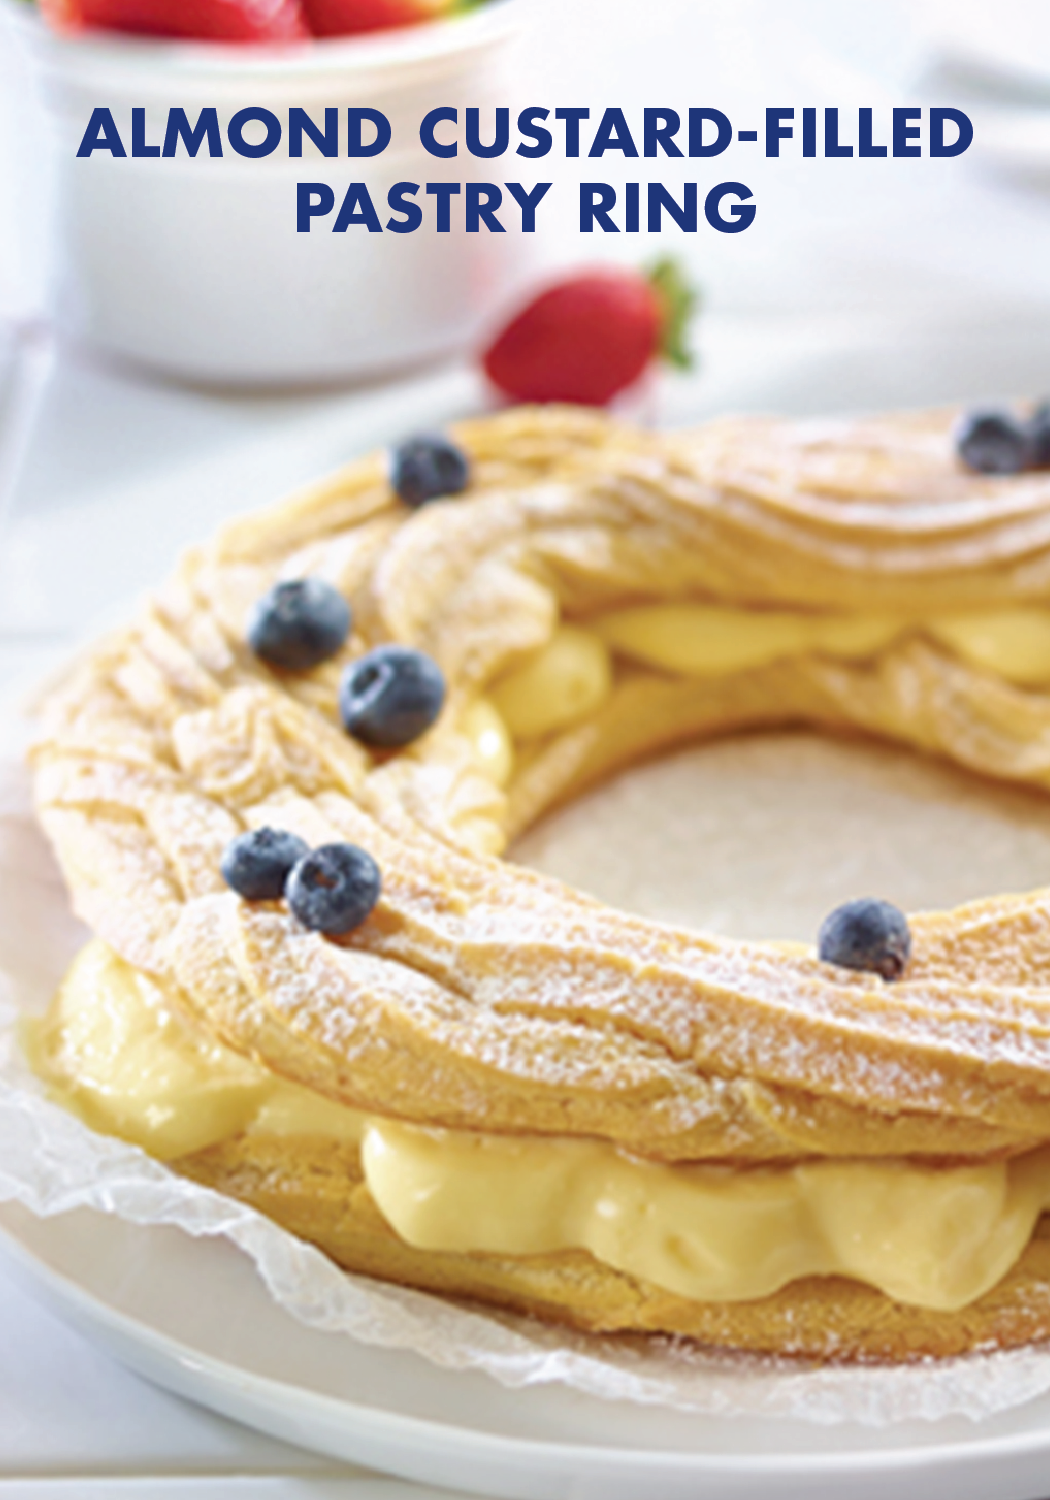 Photo of Almond Custard-Filled Pastry Ring